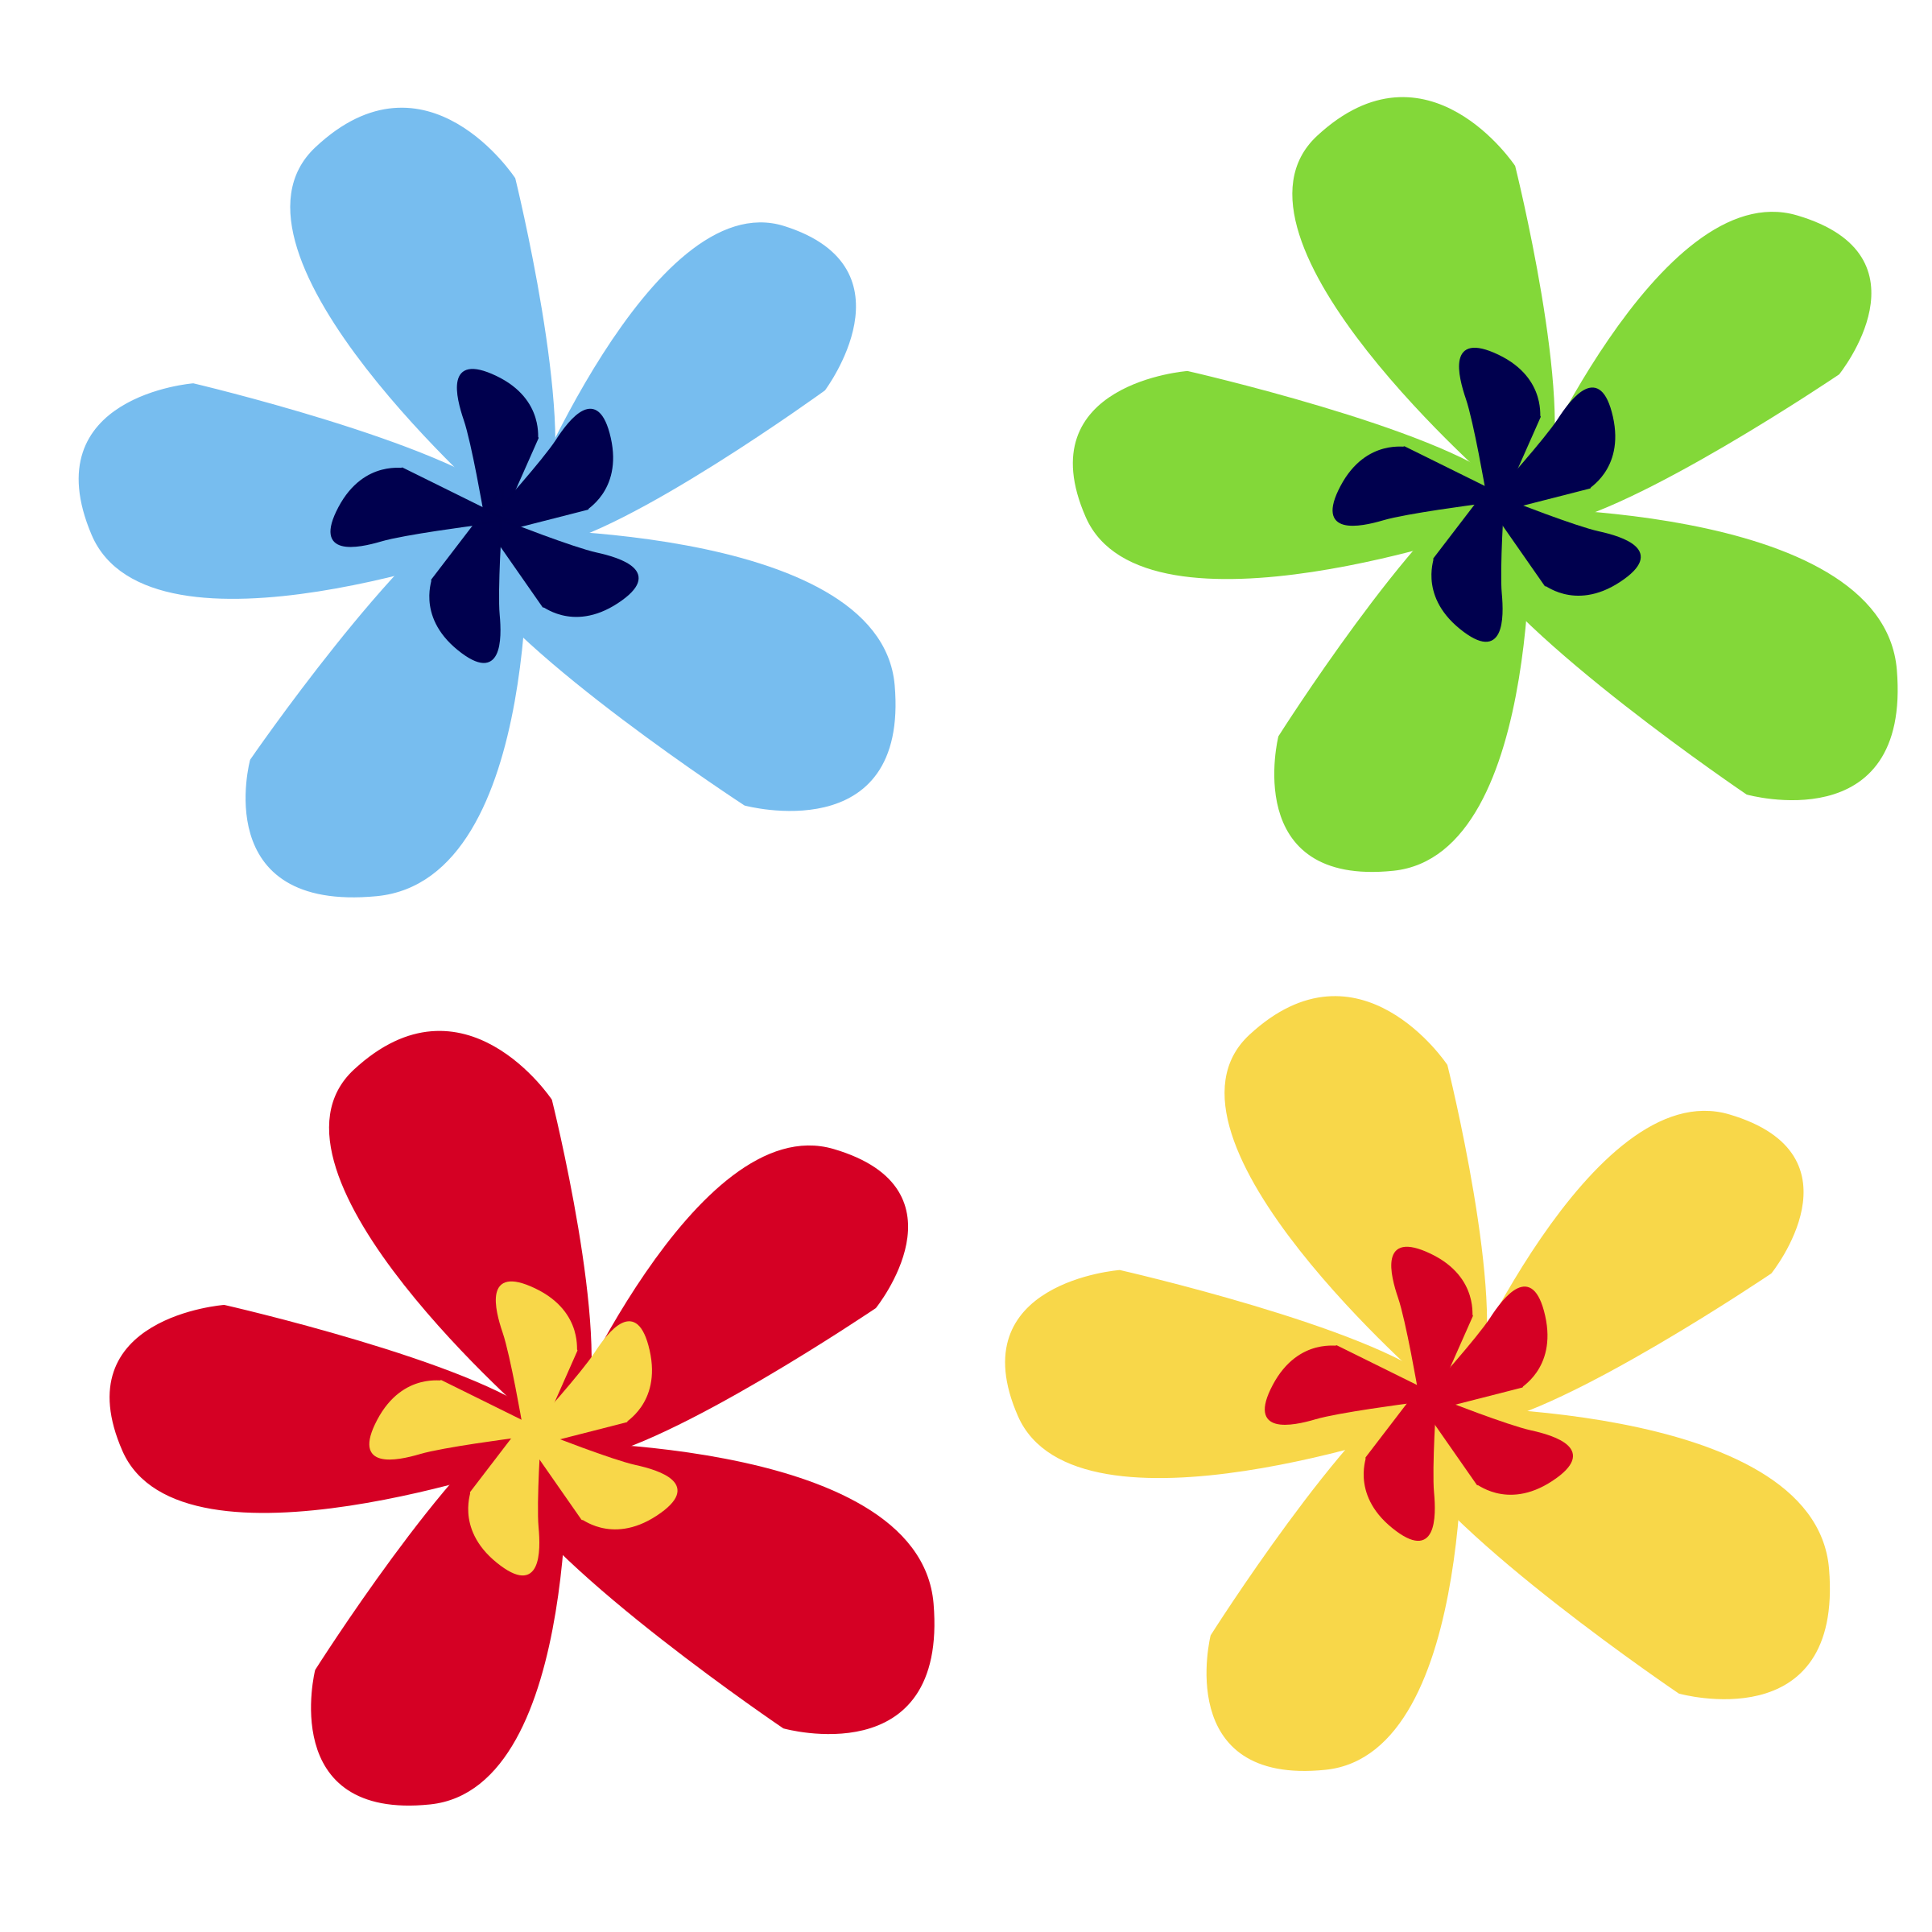 Clipart Flowers Design Clipart Flowers Design Transparent Free